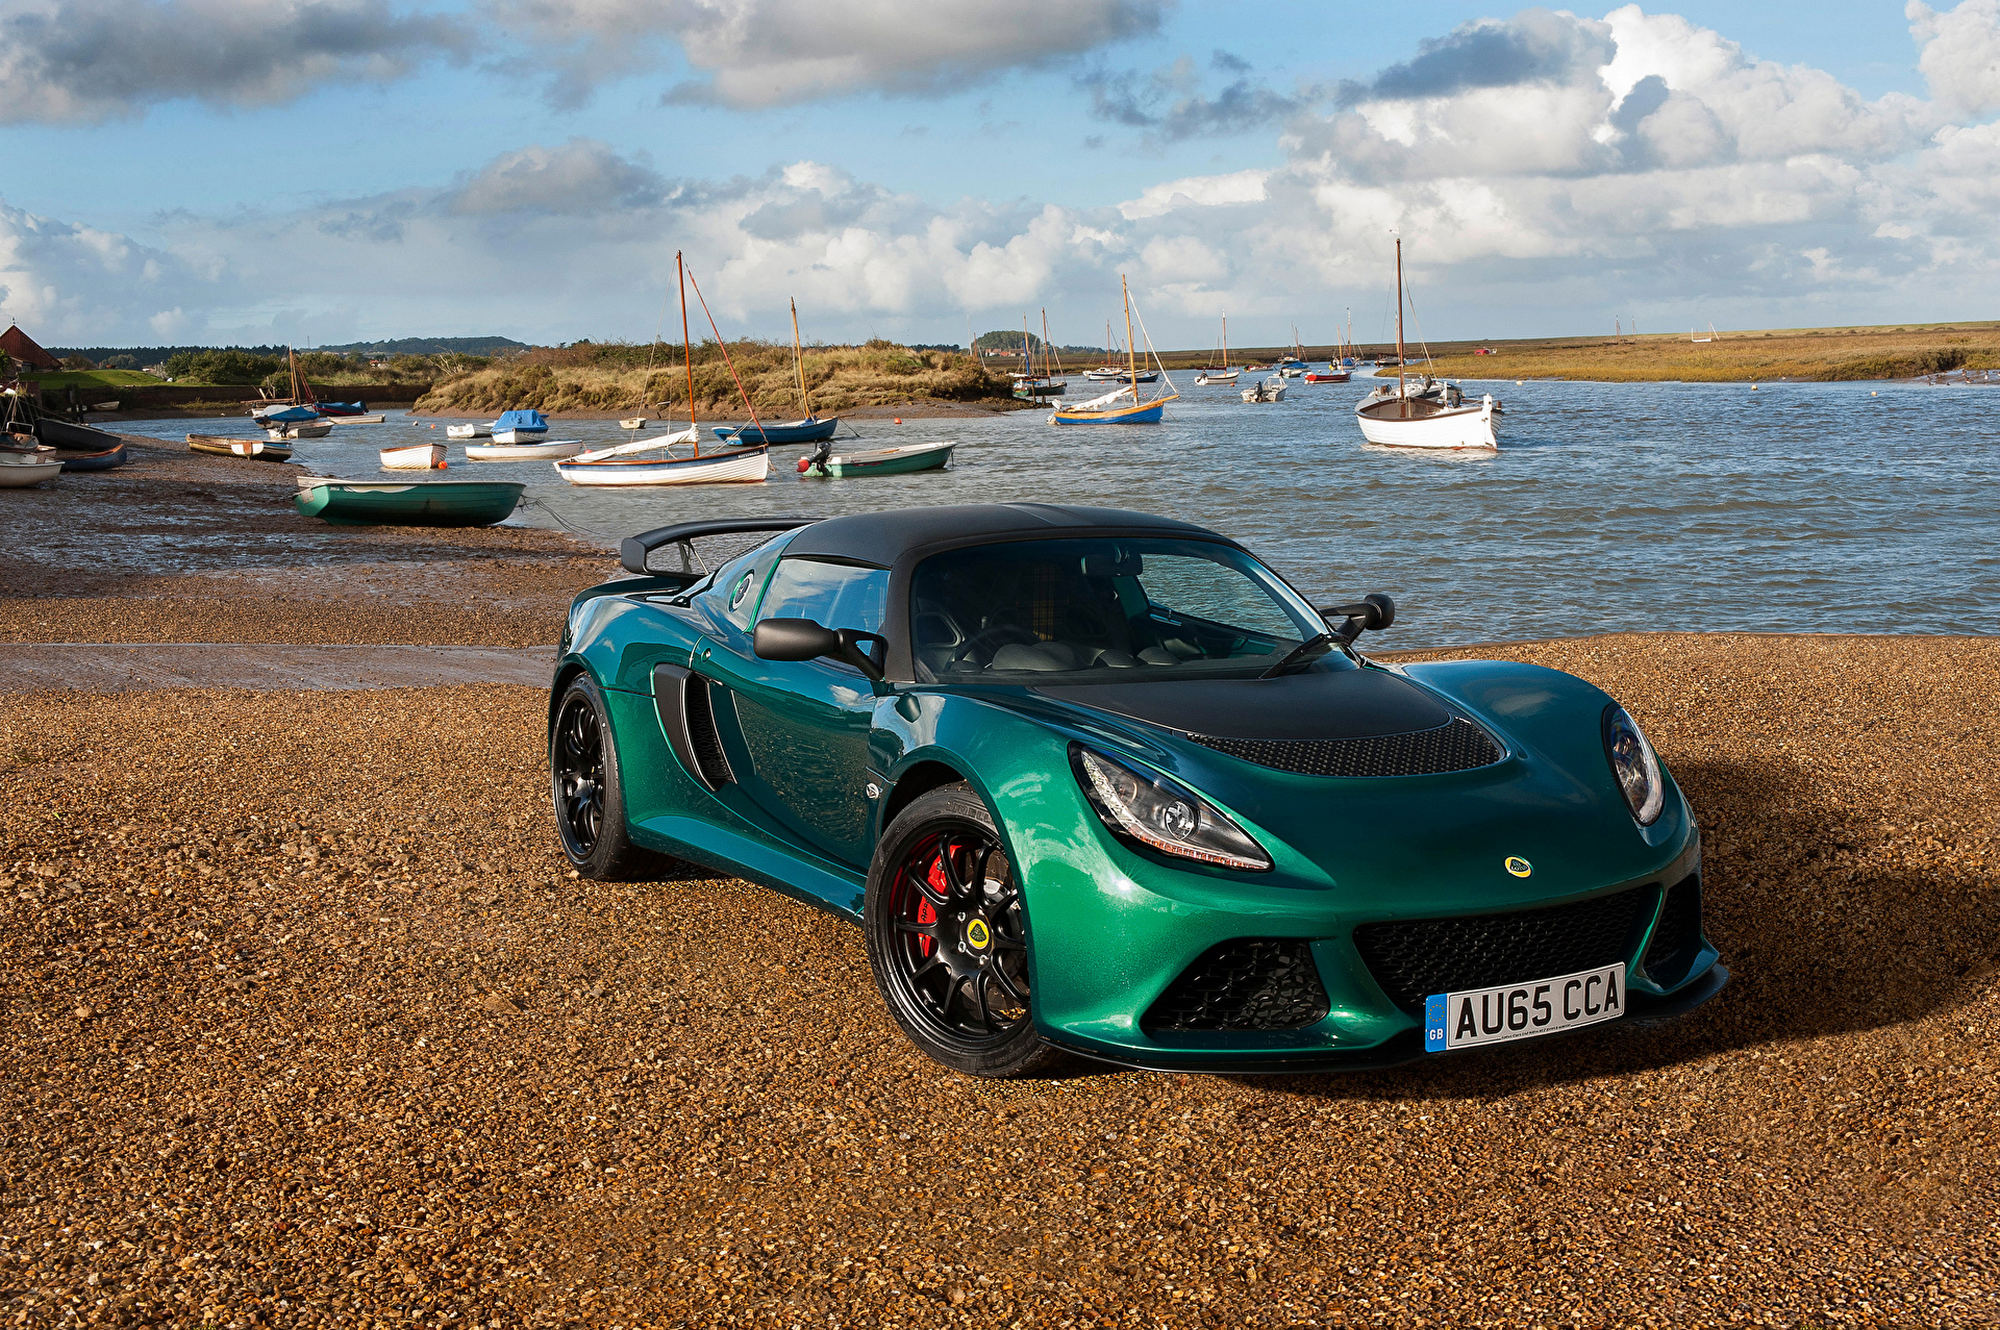 Racing Green Cars That Just Prove A Point - Gb sports cars zero